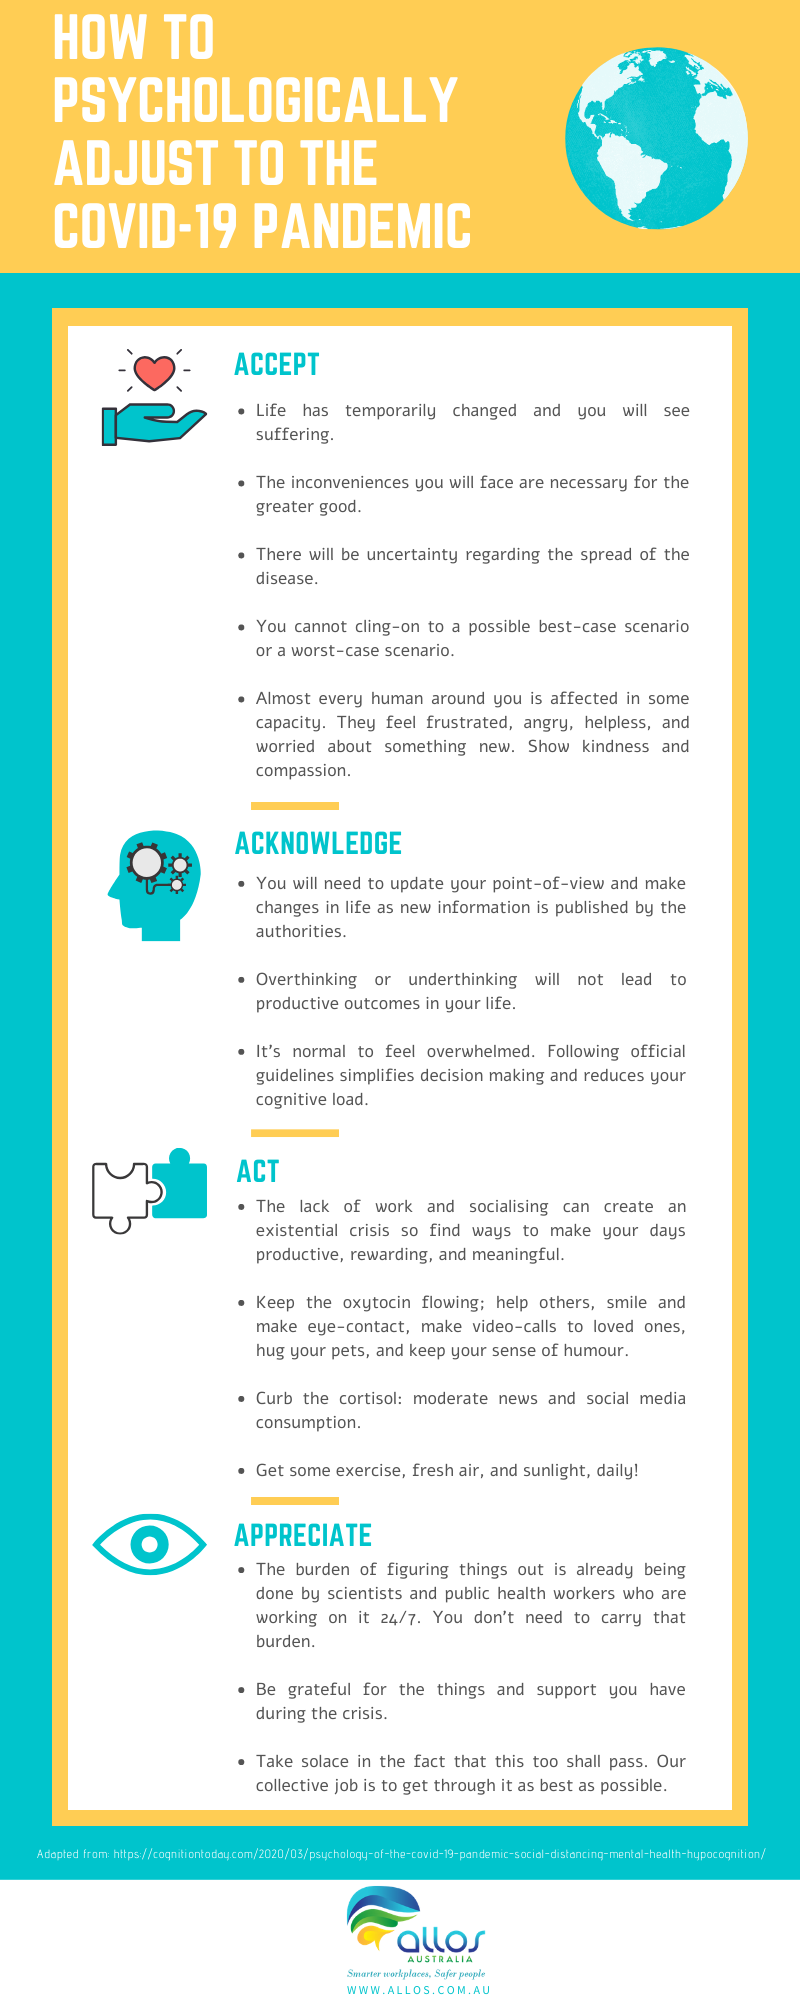 How to psychologically adjust to COVID19 - infographic 1